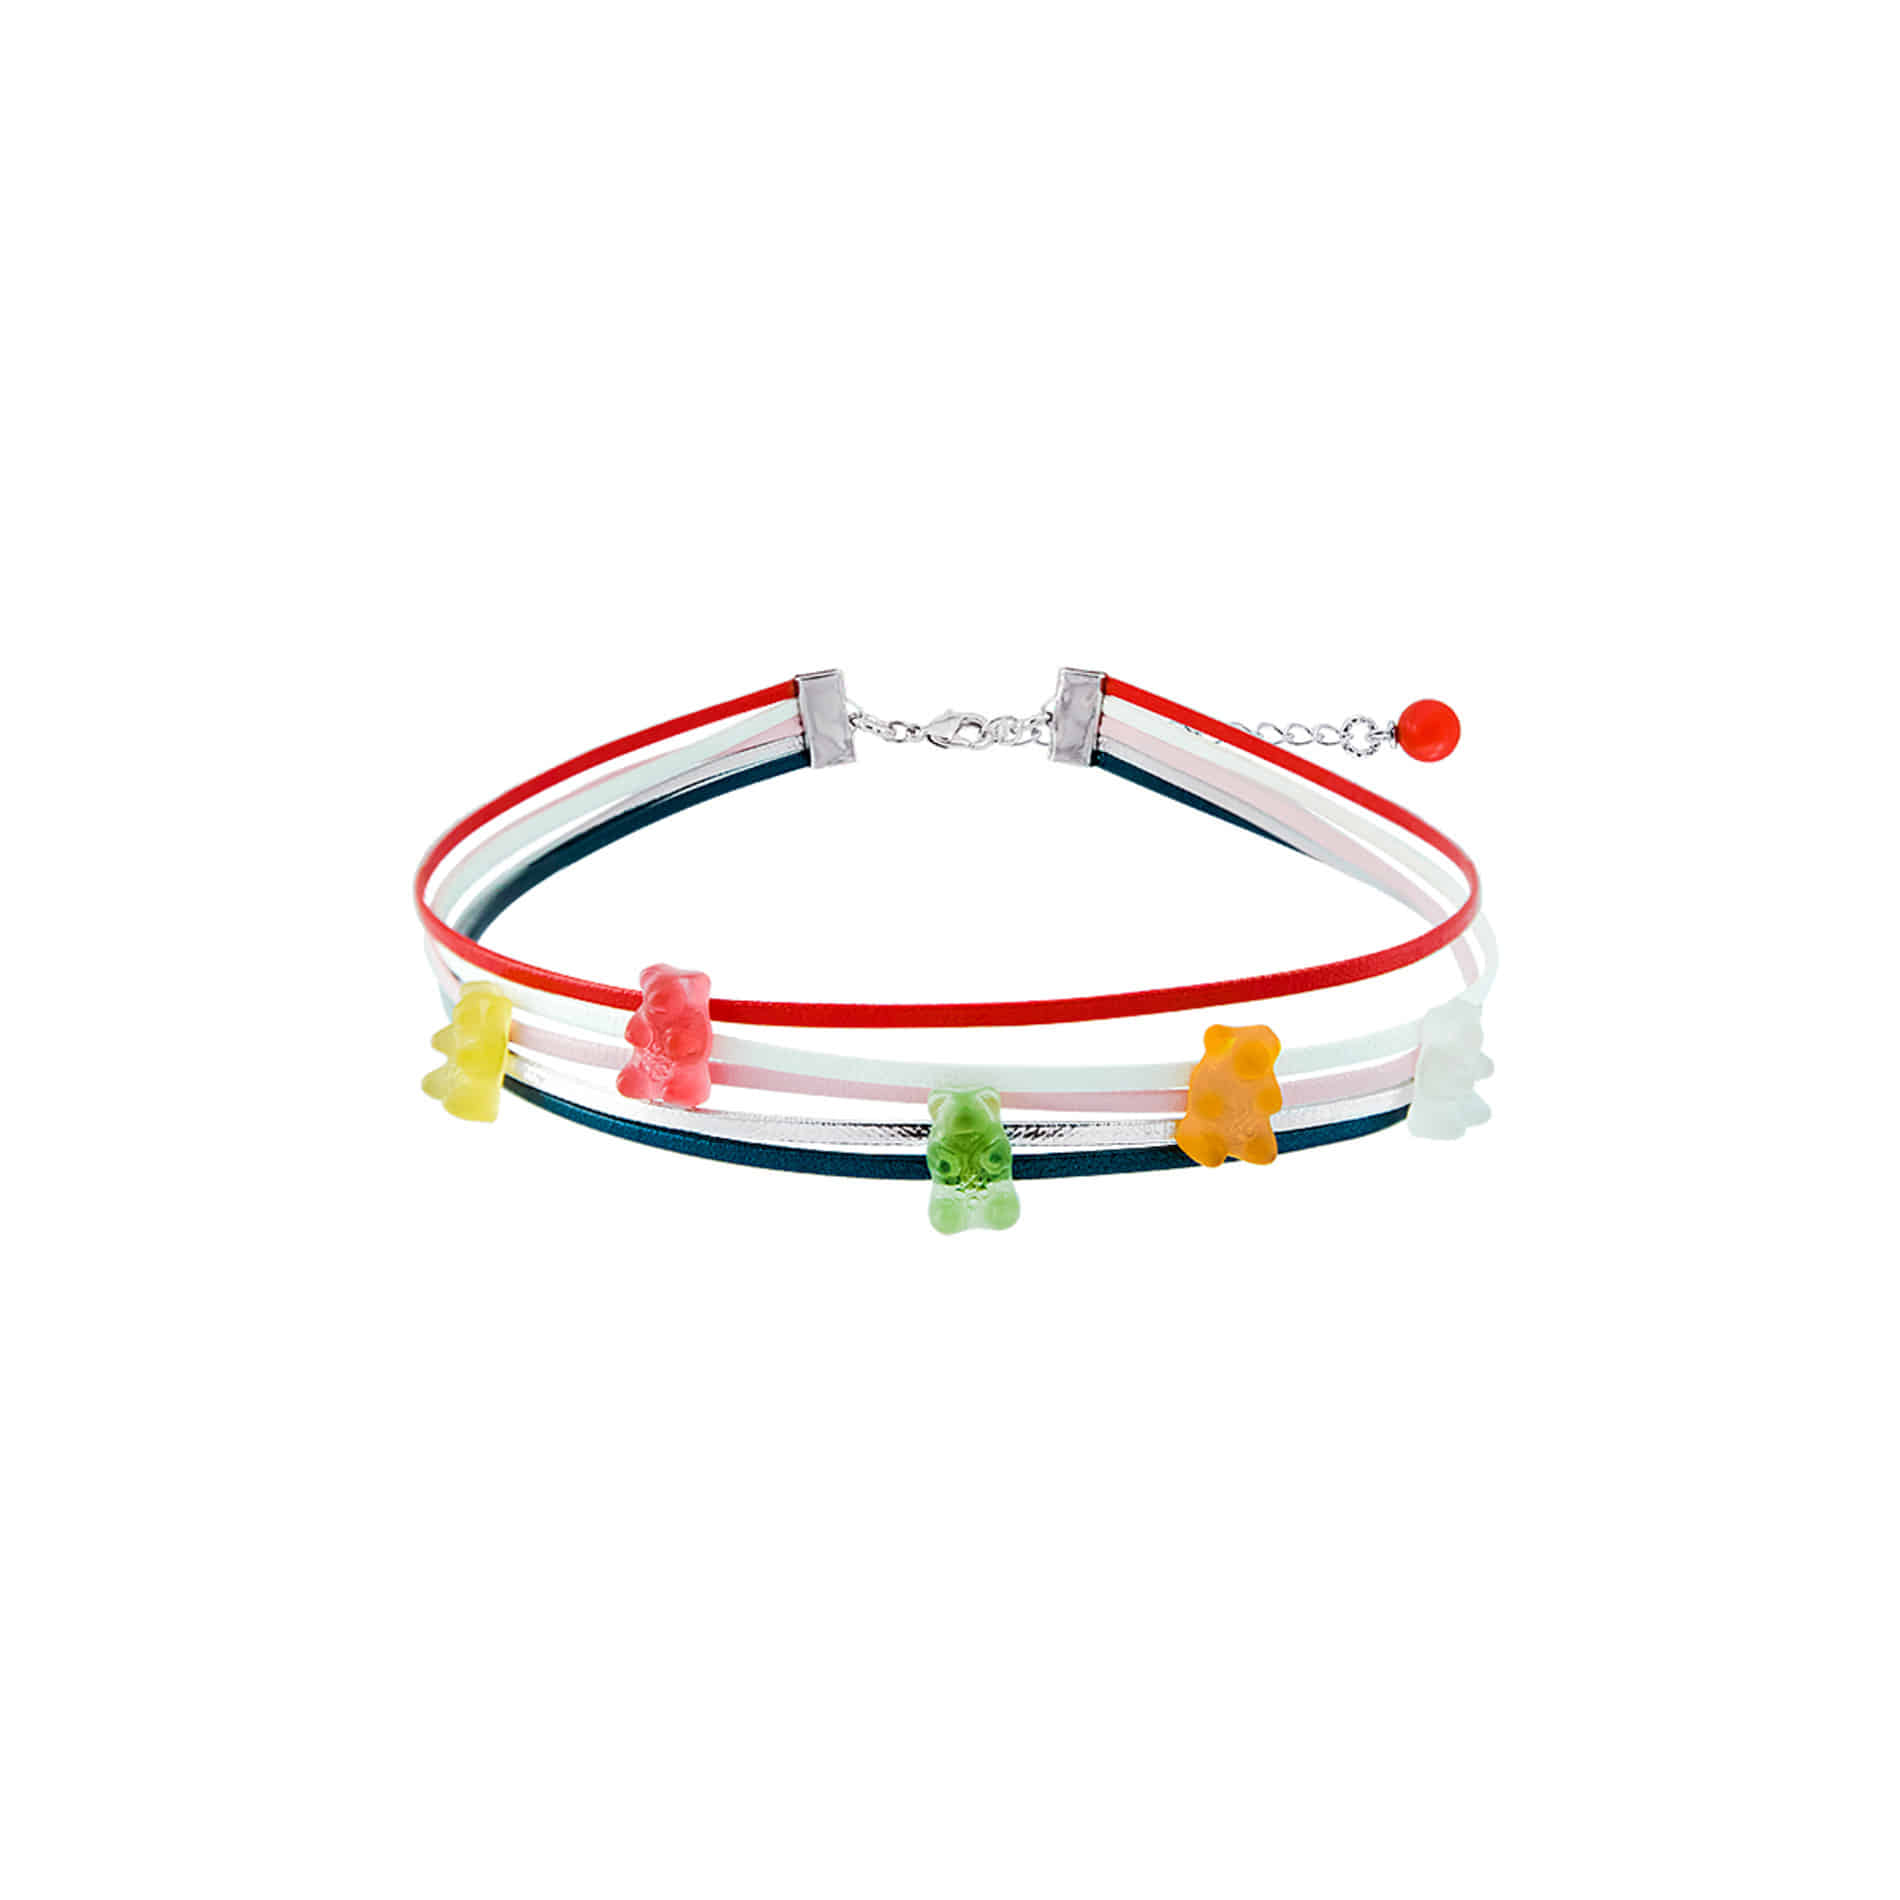 5 JELLY BEAR CHOKER NECKLACE (MULTI VIVID)